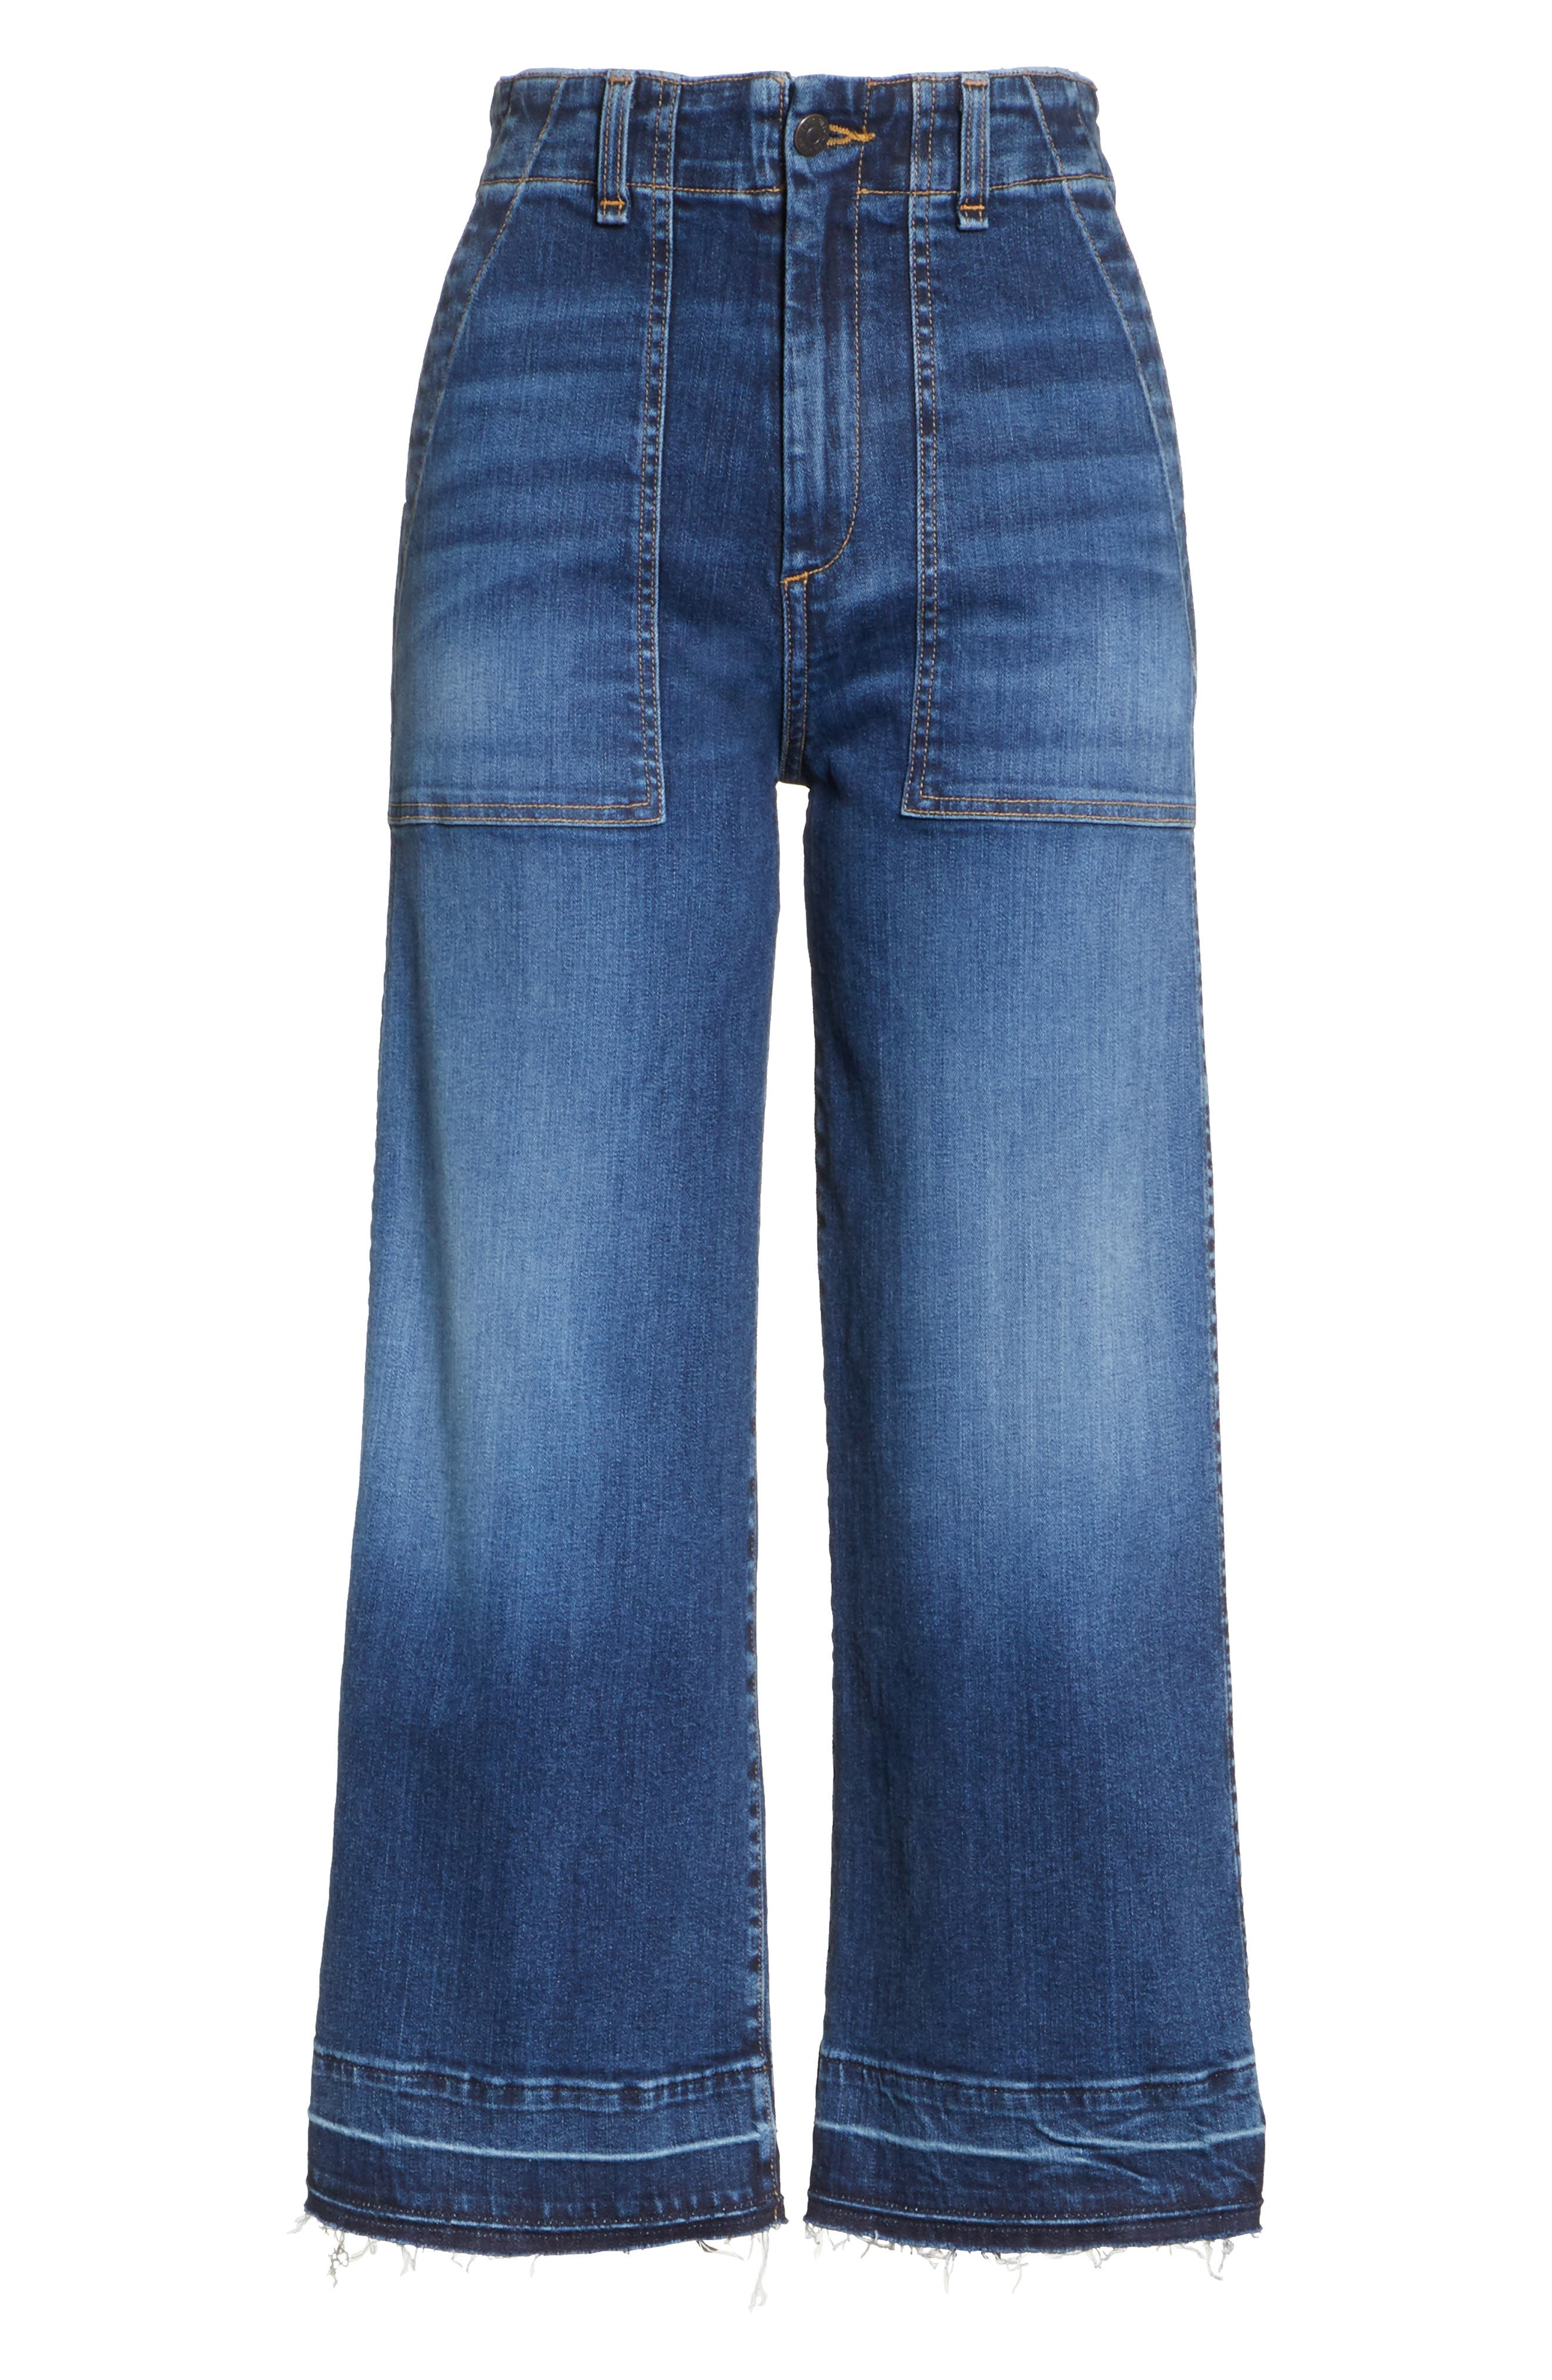 Lou Released Hem Gaucho Jeans,                             Alternate thumbnail 7, color,                             411